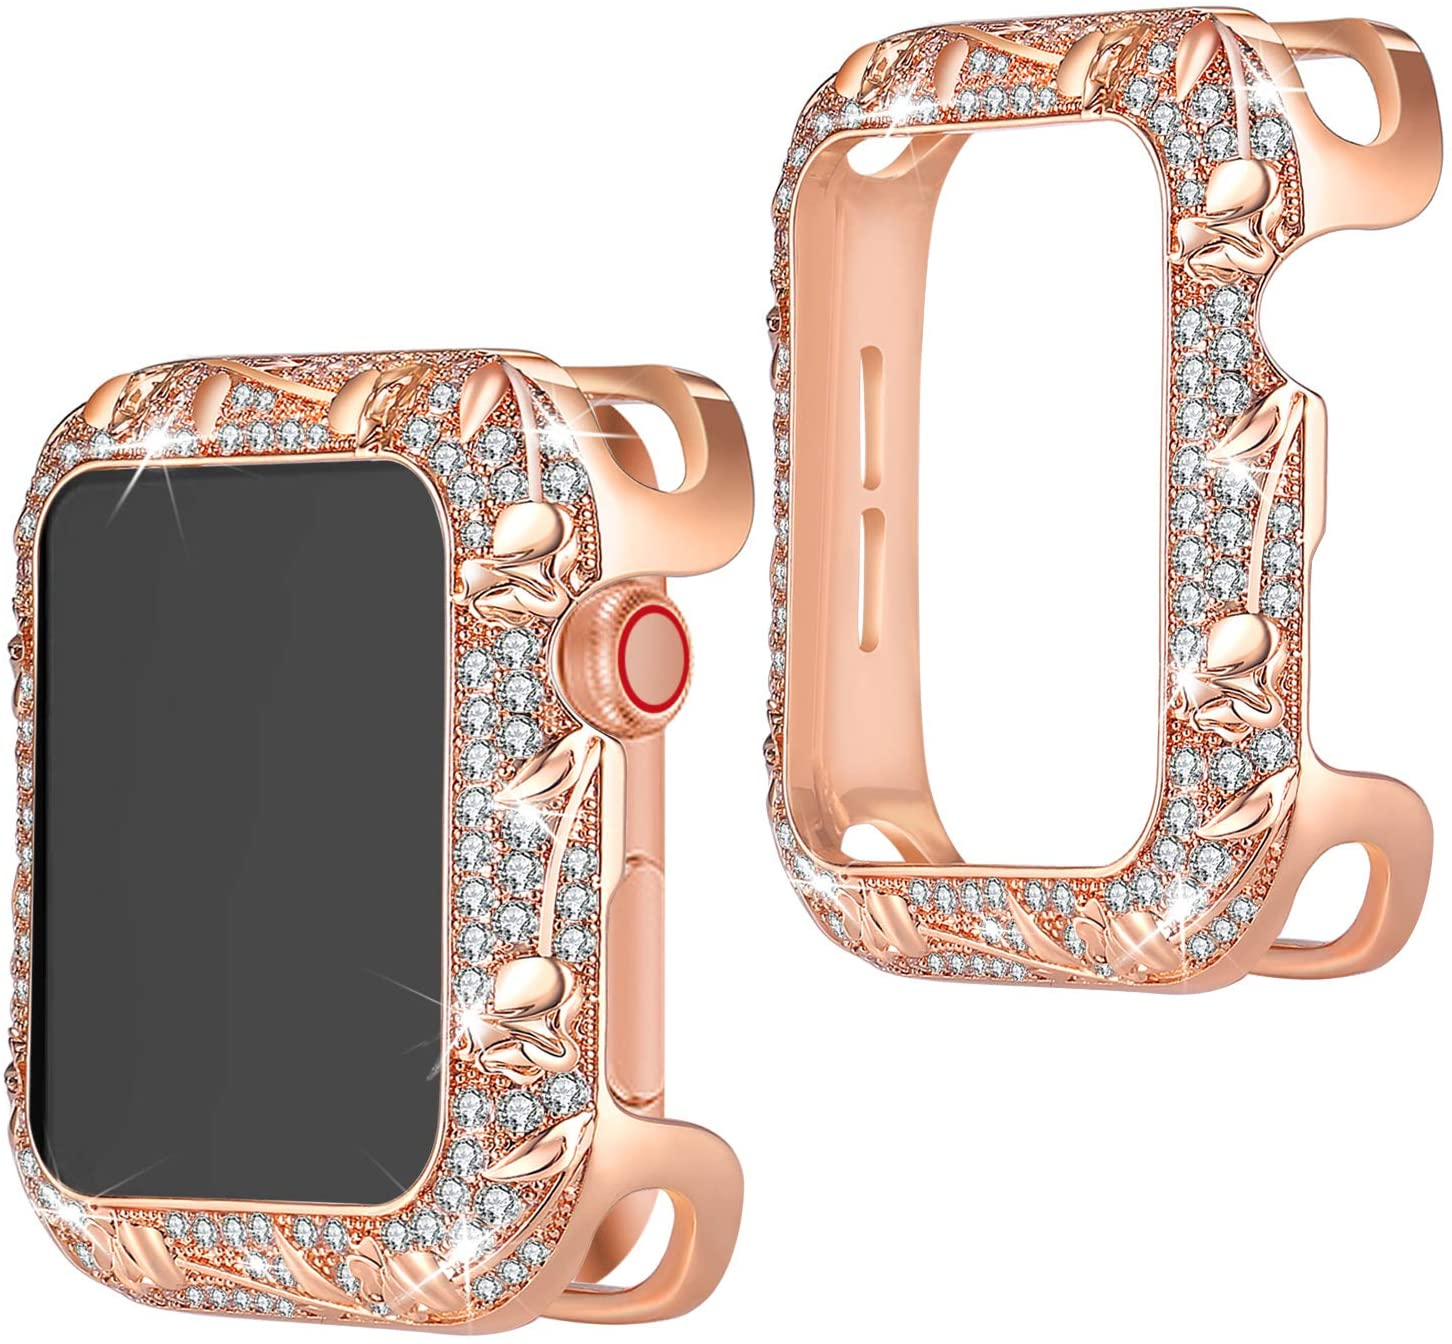 TOMAZON Bling Case Compatible for Apple Watch Case 40mm Series 4 Series 5, Stainless Metal Shiny Jewelry Crystal Diamond Protector Cover with Floral Print Bumper for iWatch 40mm Women Girl, Rose Gold